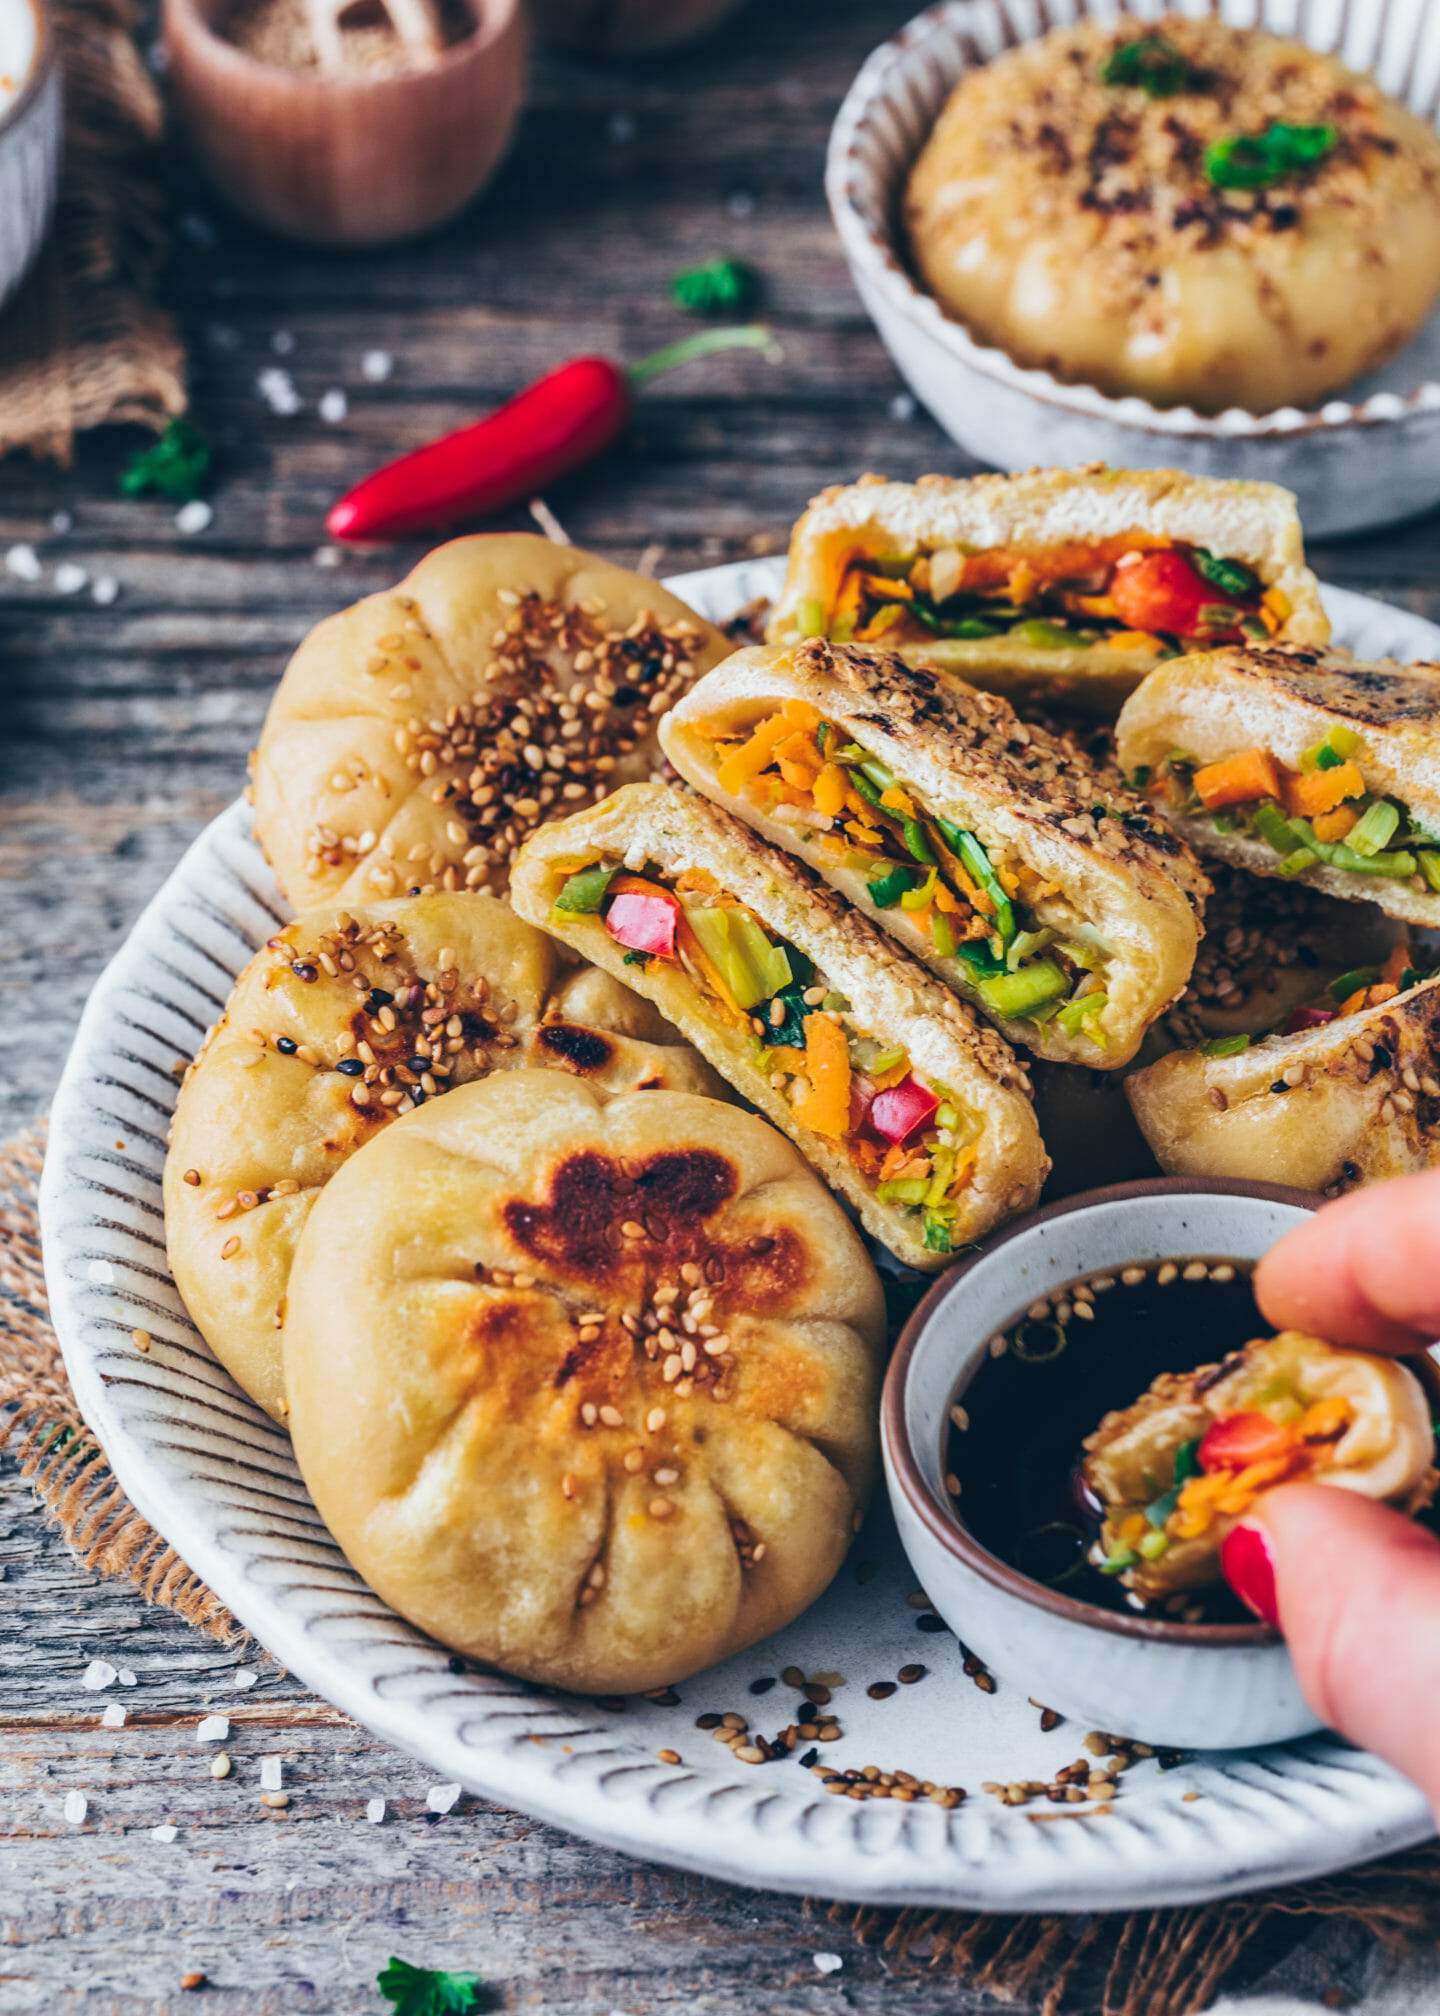 Vegetable Buns (Chinese steamed baozi dumplings)